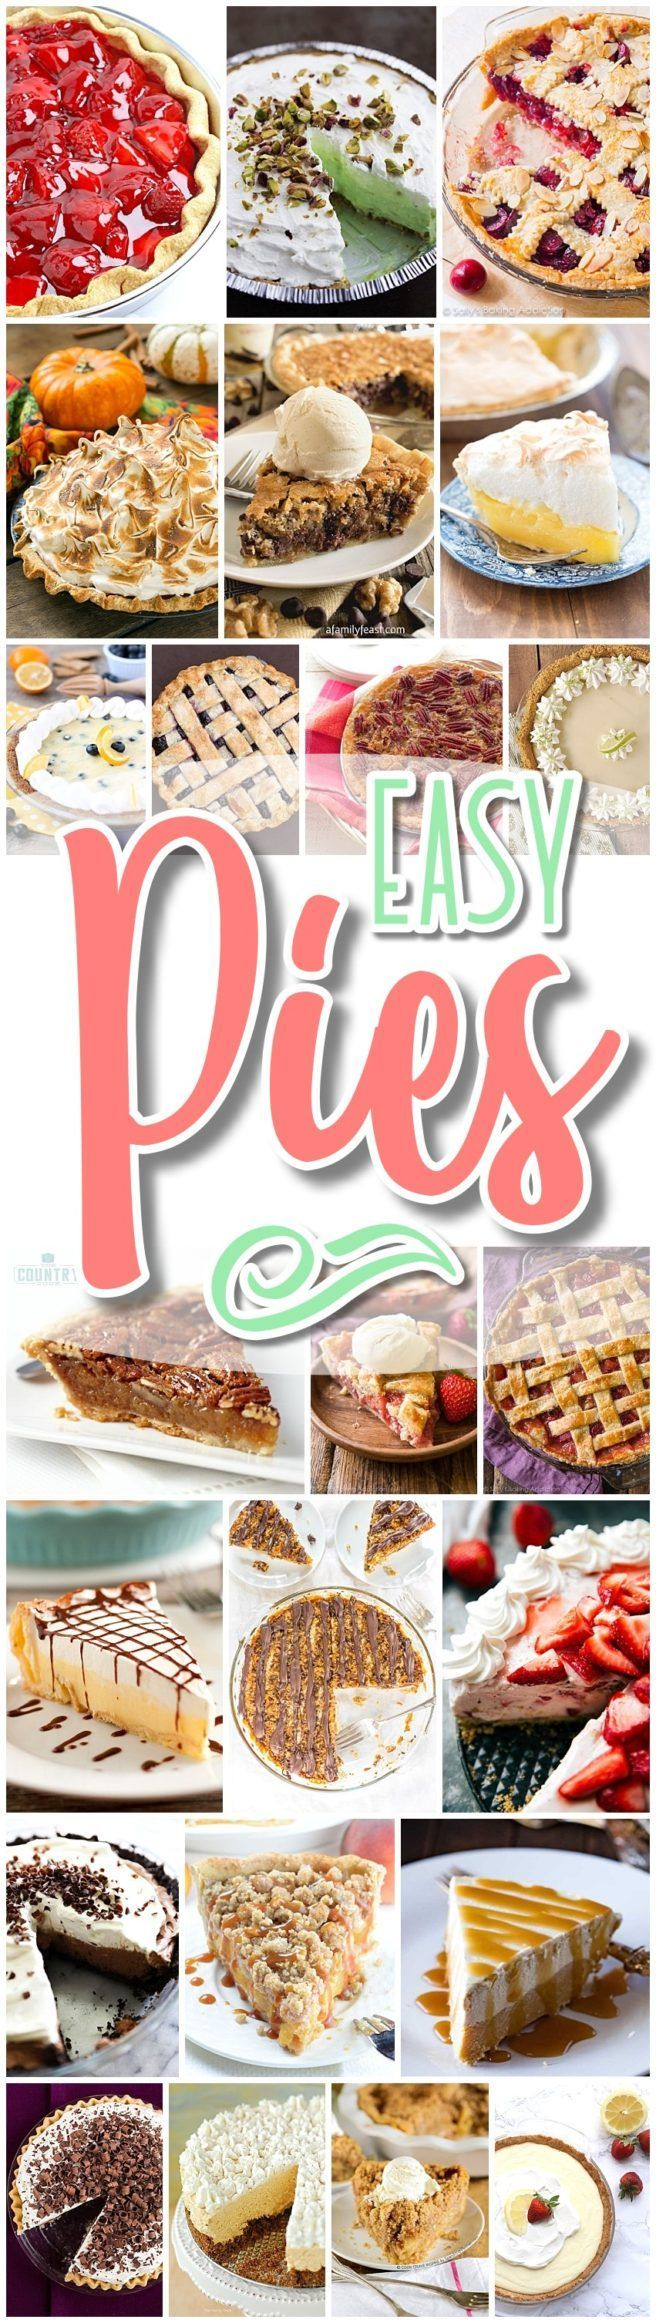 Favorite EASY Pies Recipes Thanksgiving and